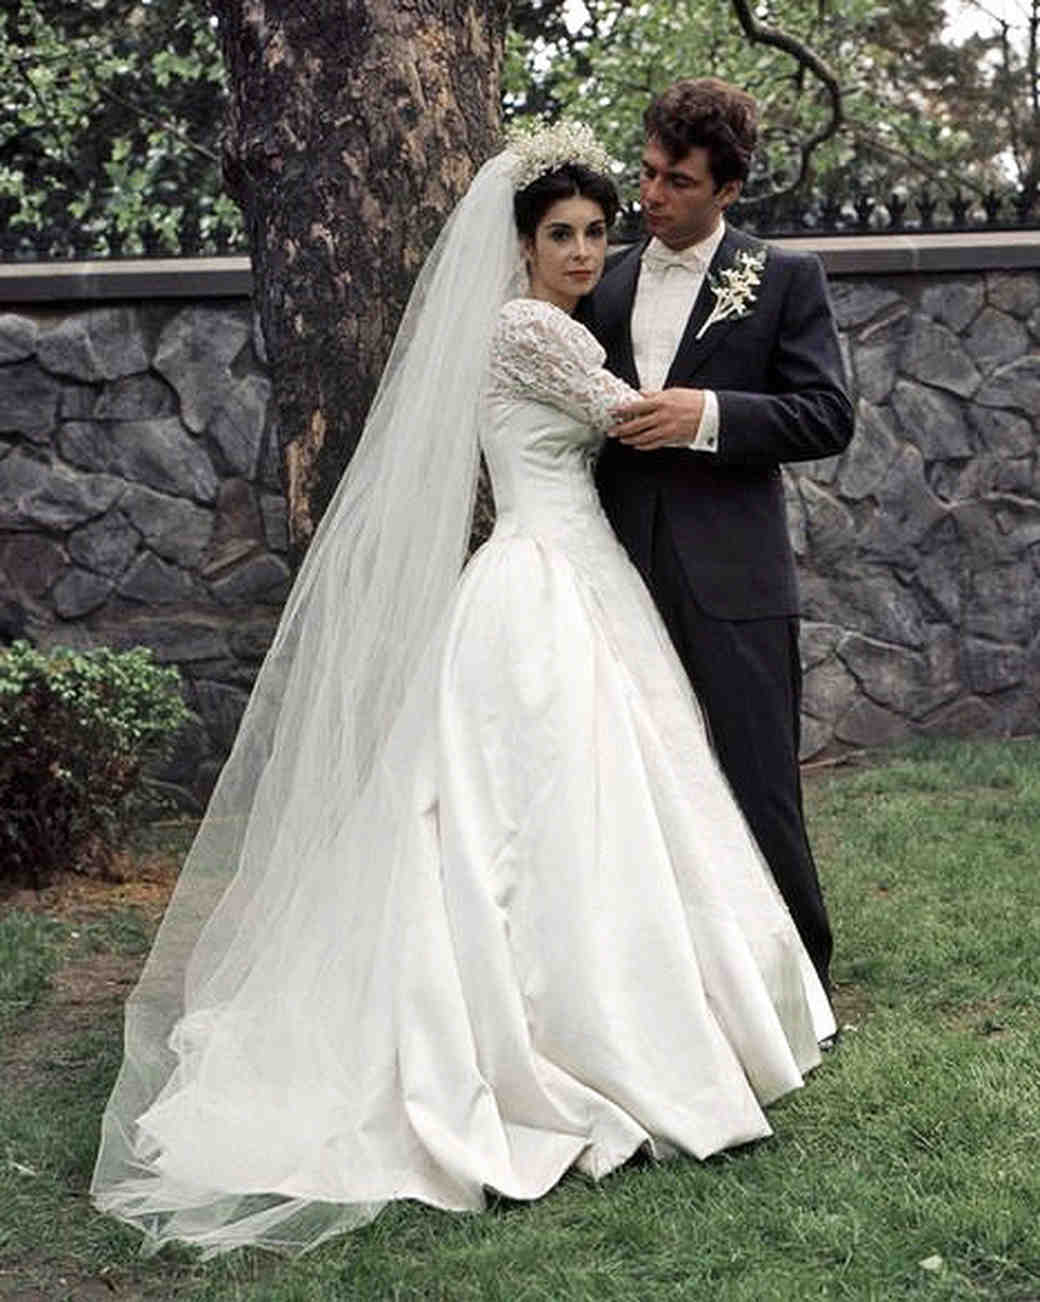 movie-wedding-dresses-the-godfather-talia-shire-0516_vert